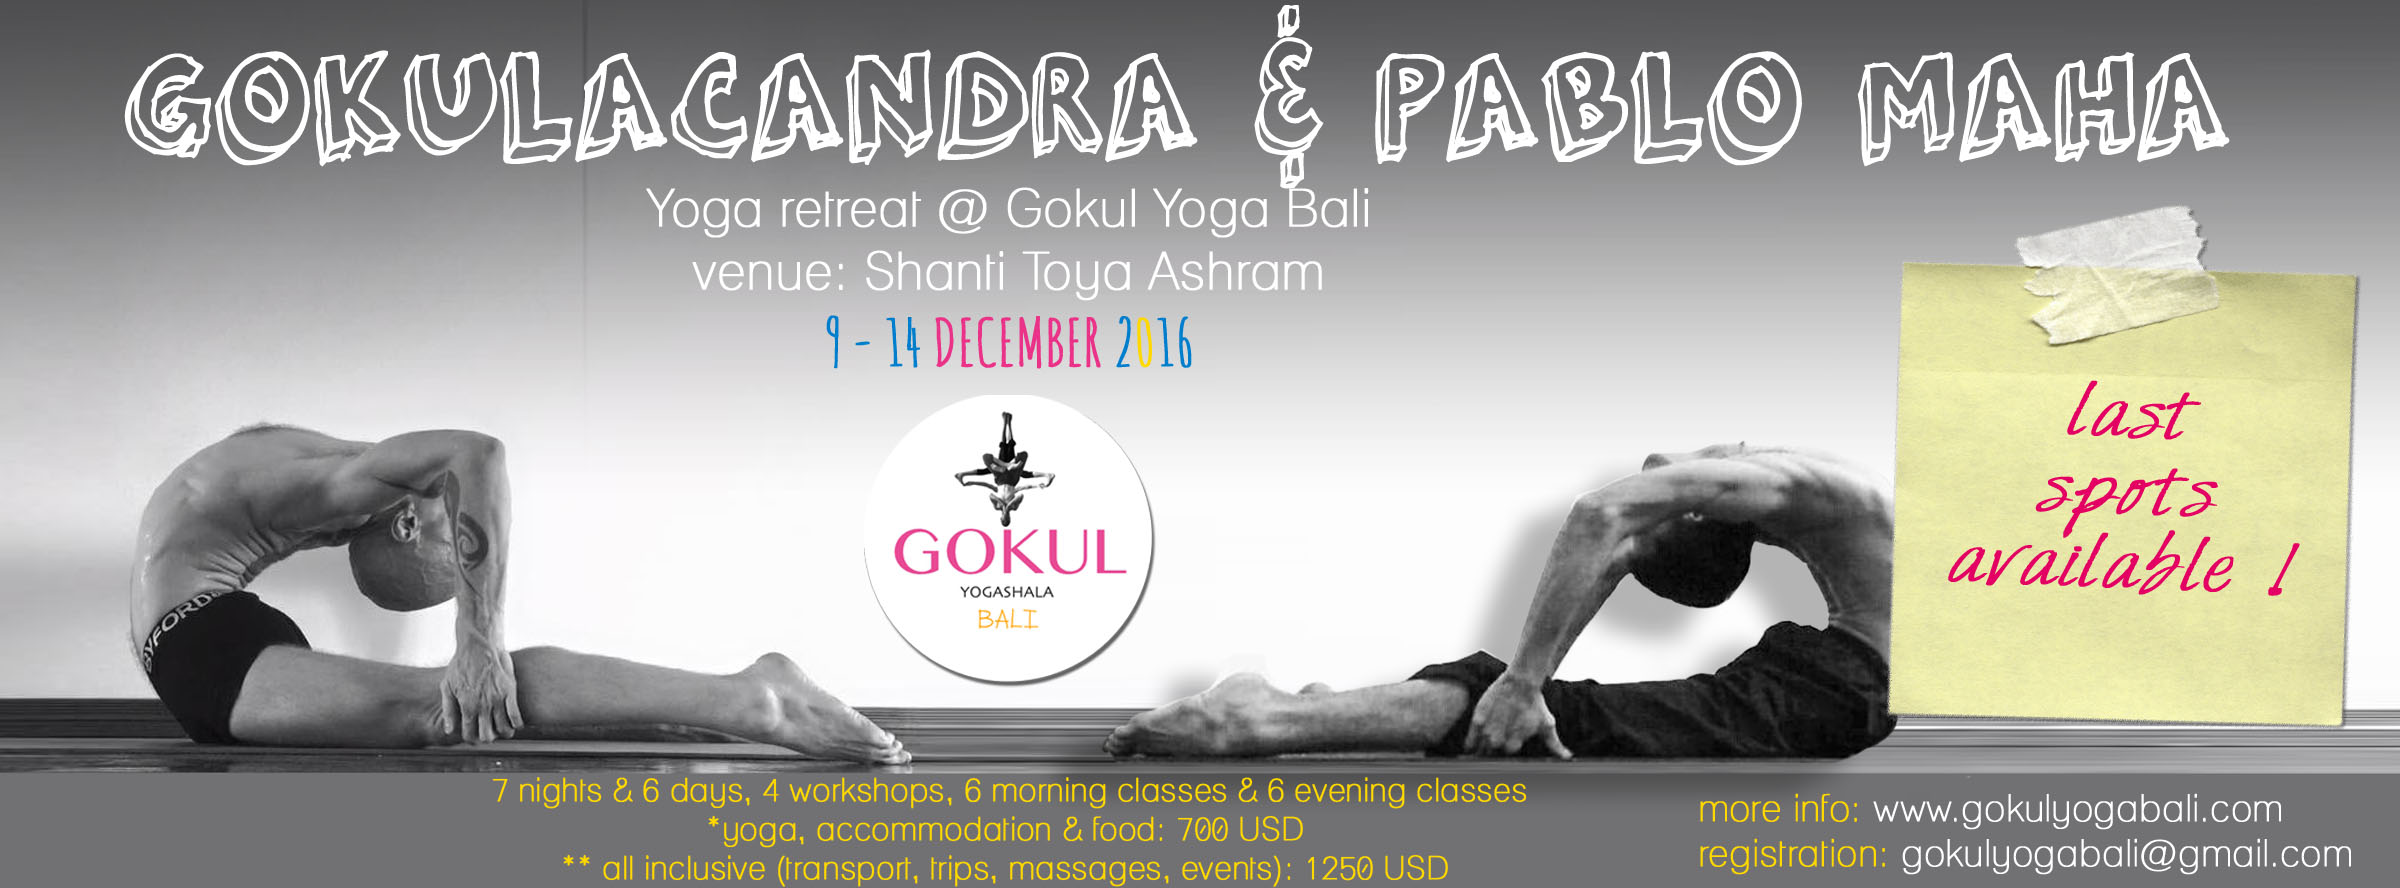 Gokulacandra Yoga Retreat in Bali